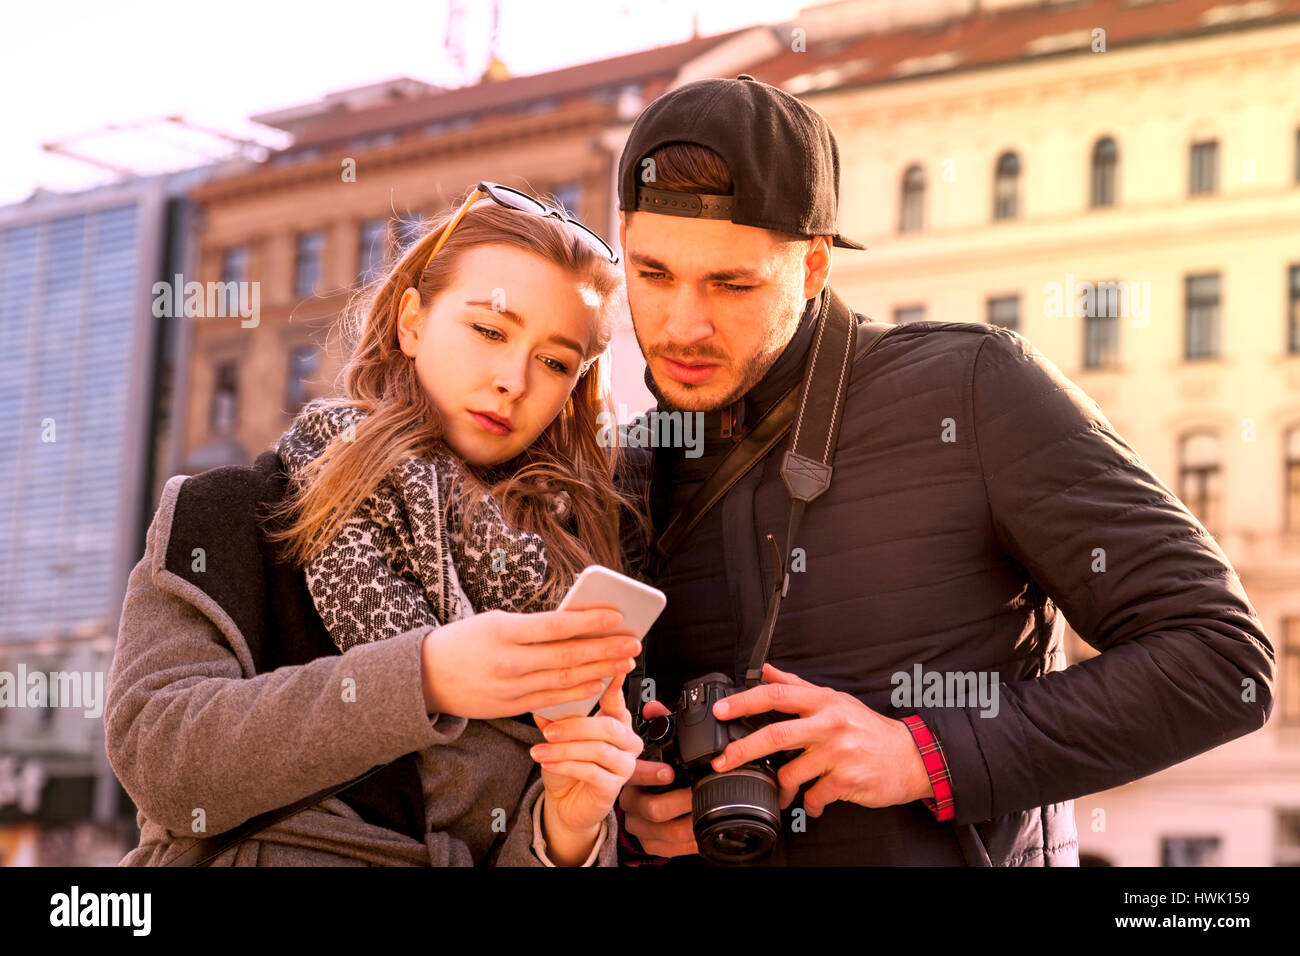 tourists couple tries to find the way on smart phone navigation app - Stock Image